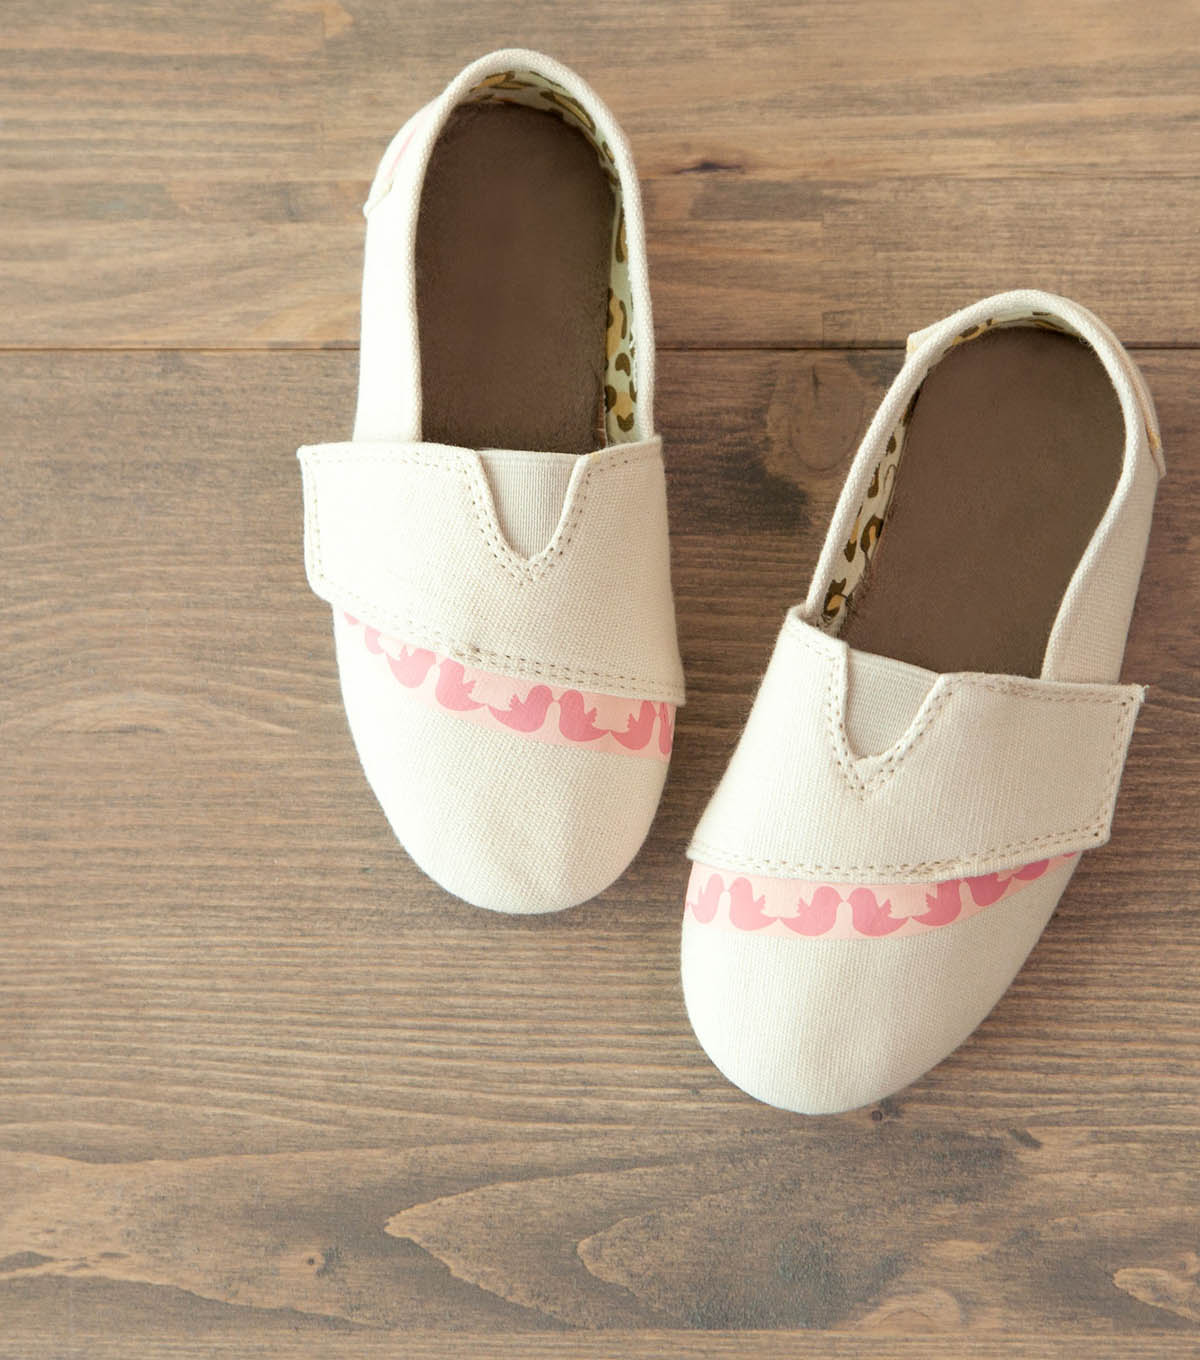 Printable Iron On Light Baby Shoes Joann